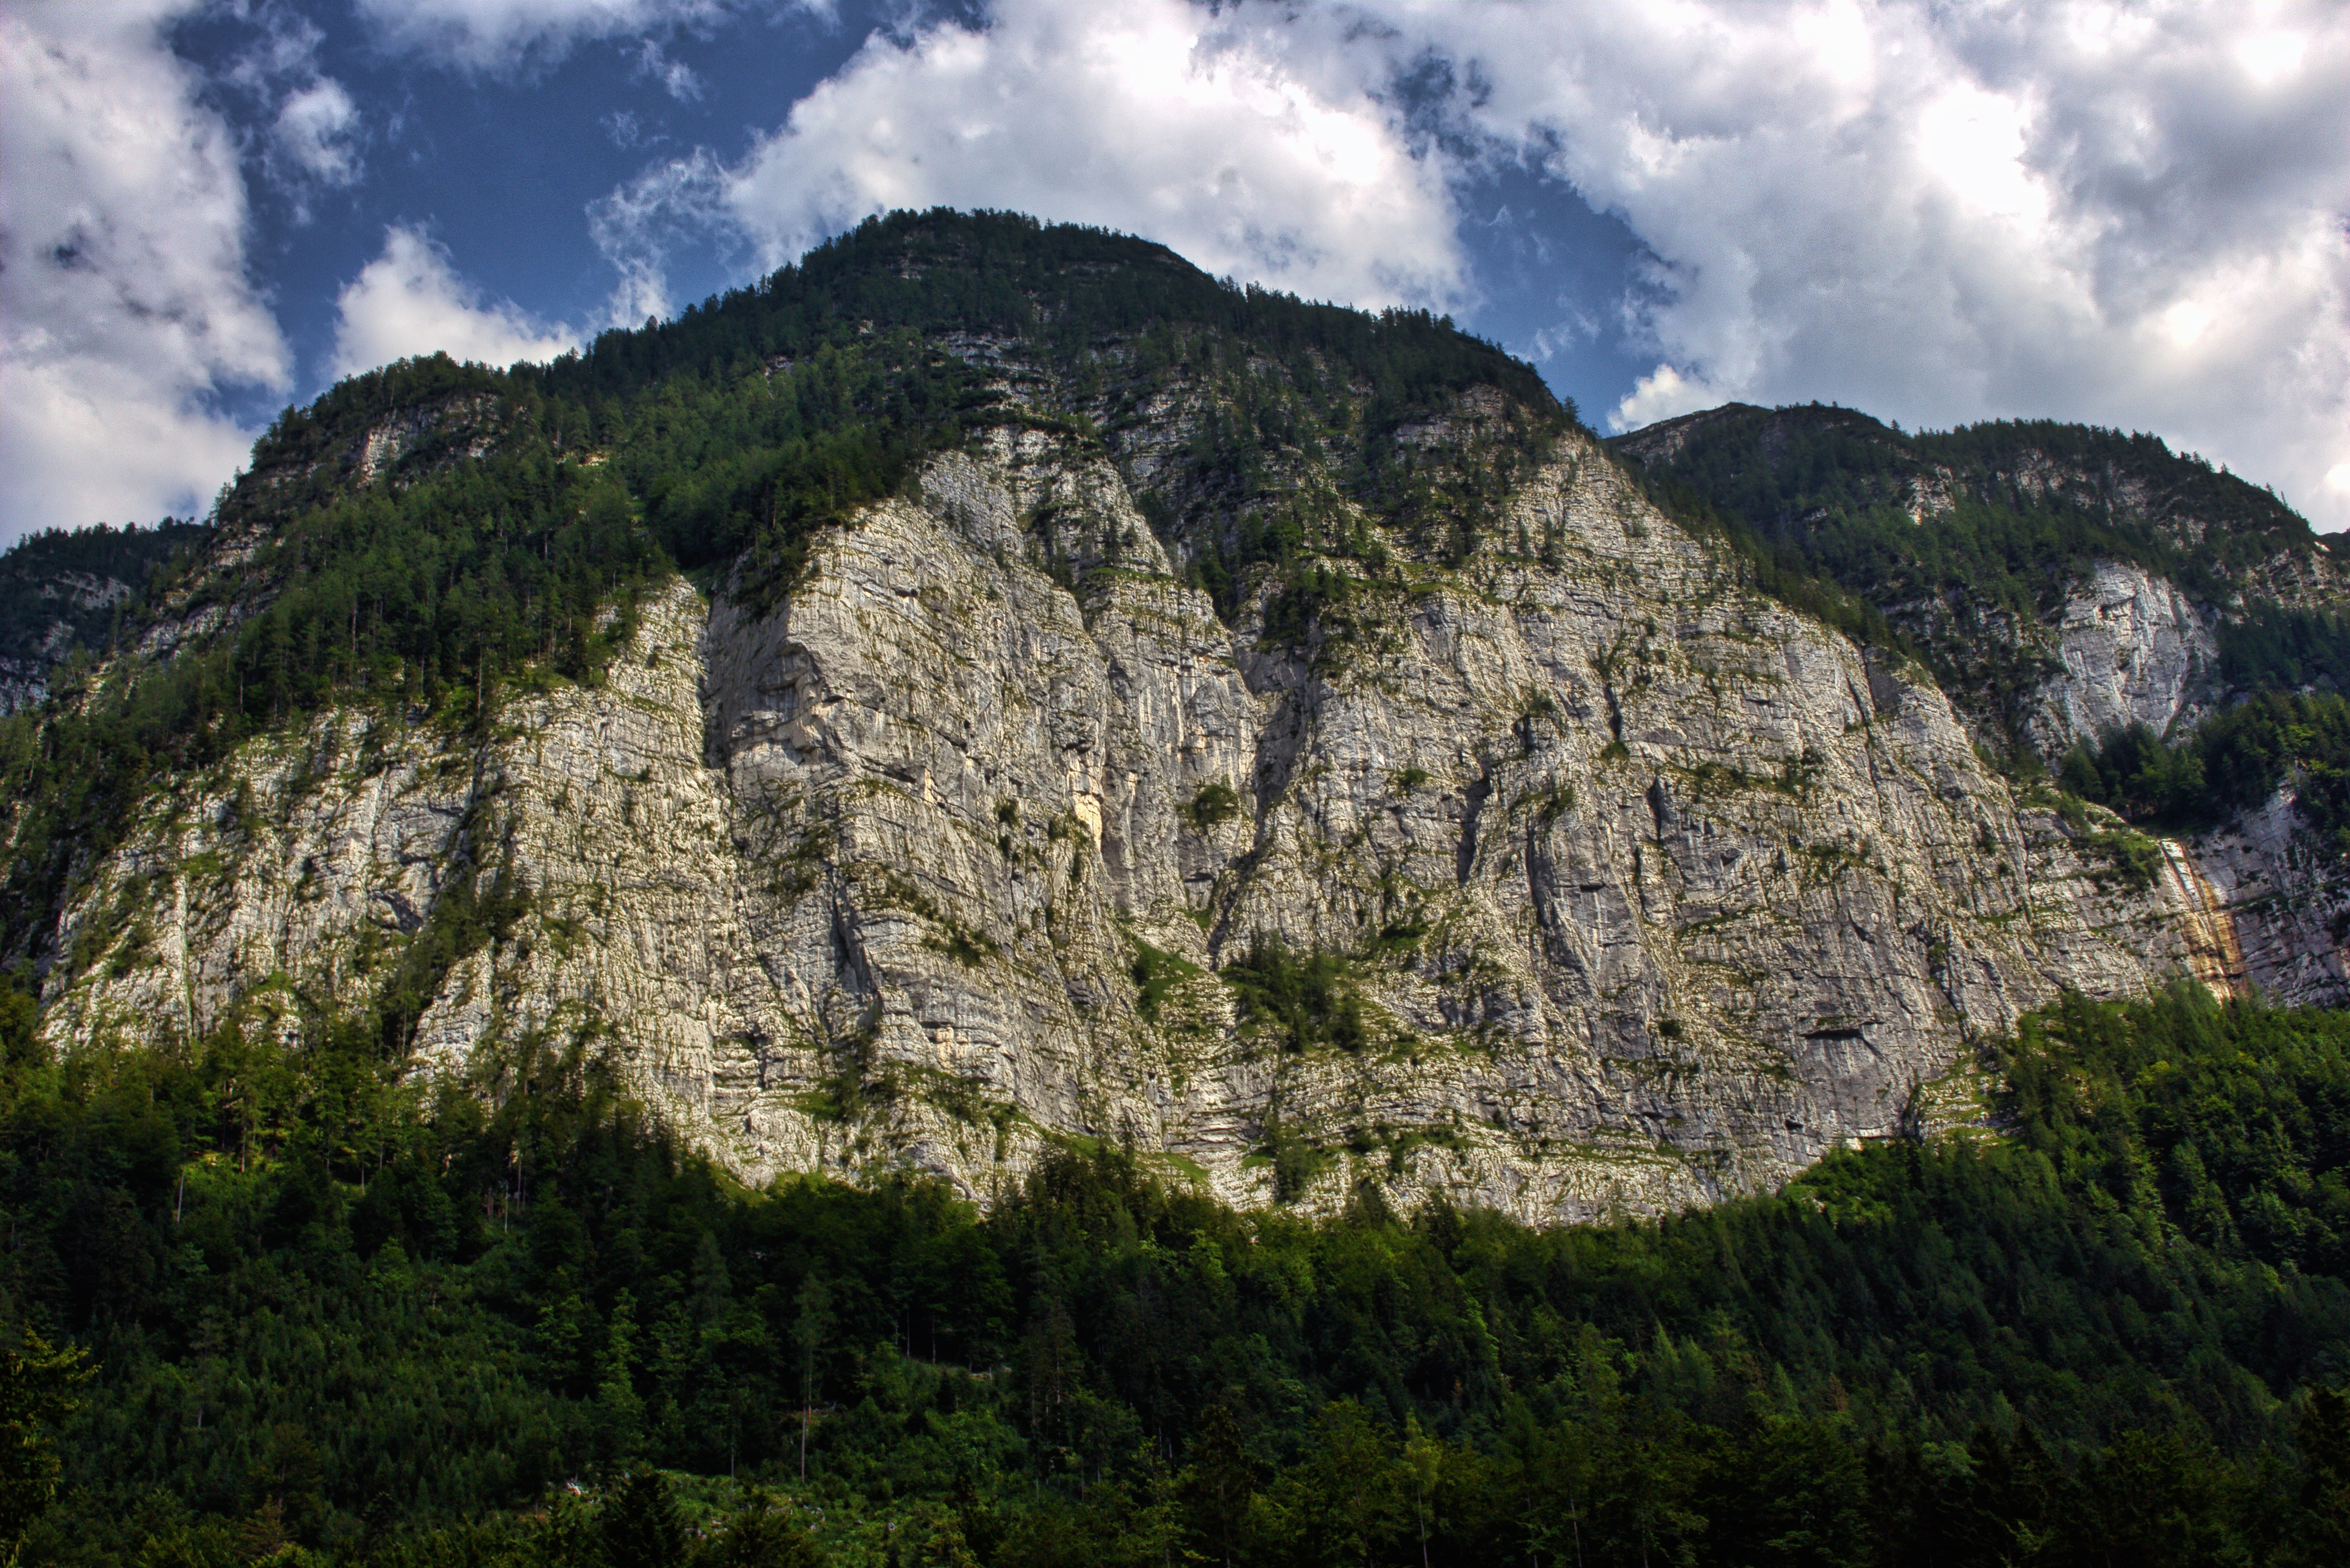 A steep rugged mountain with green woods on its top